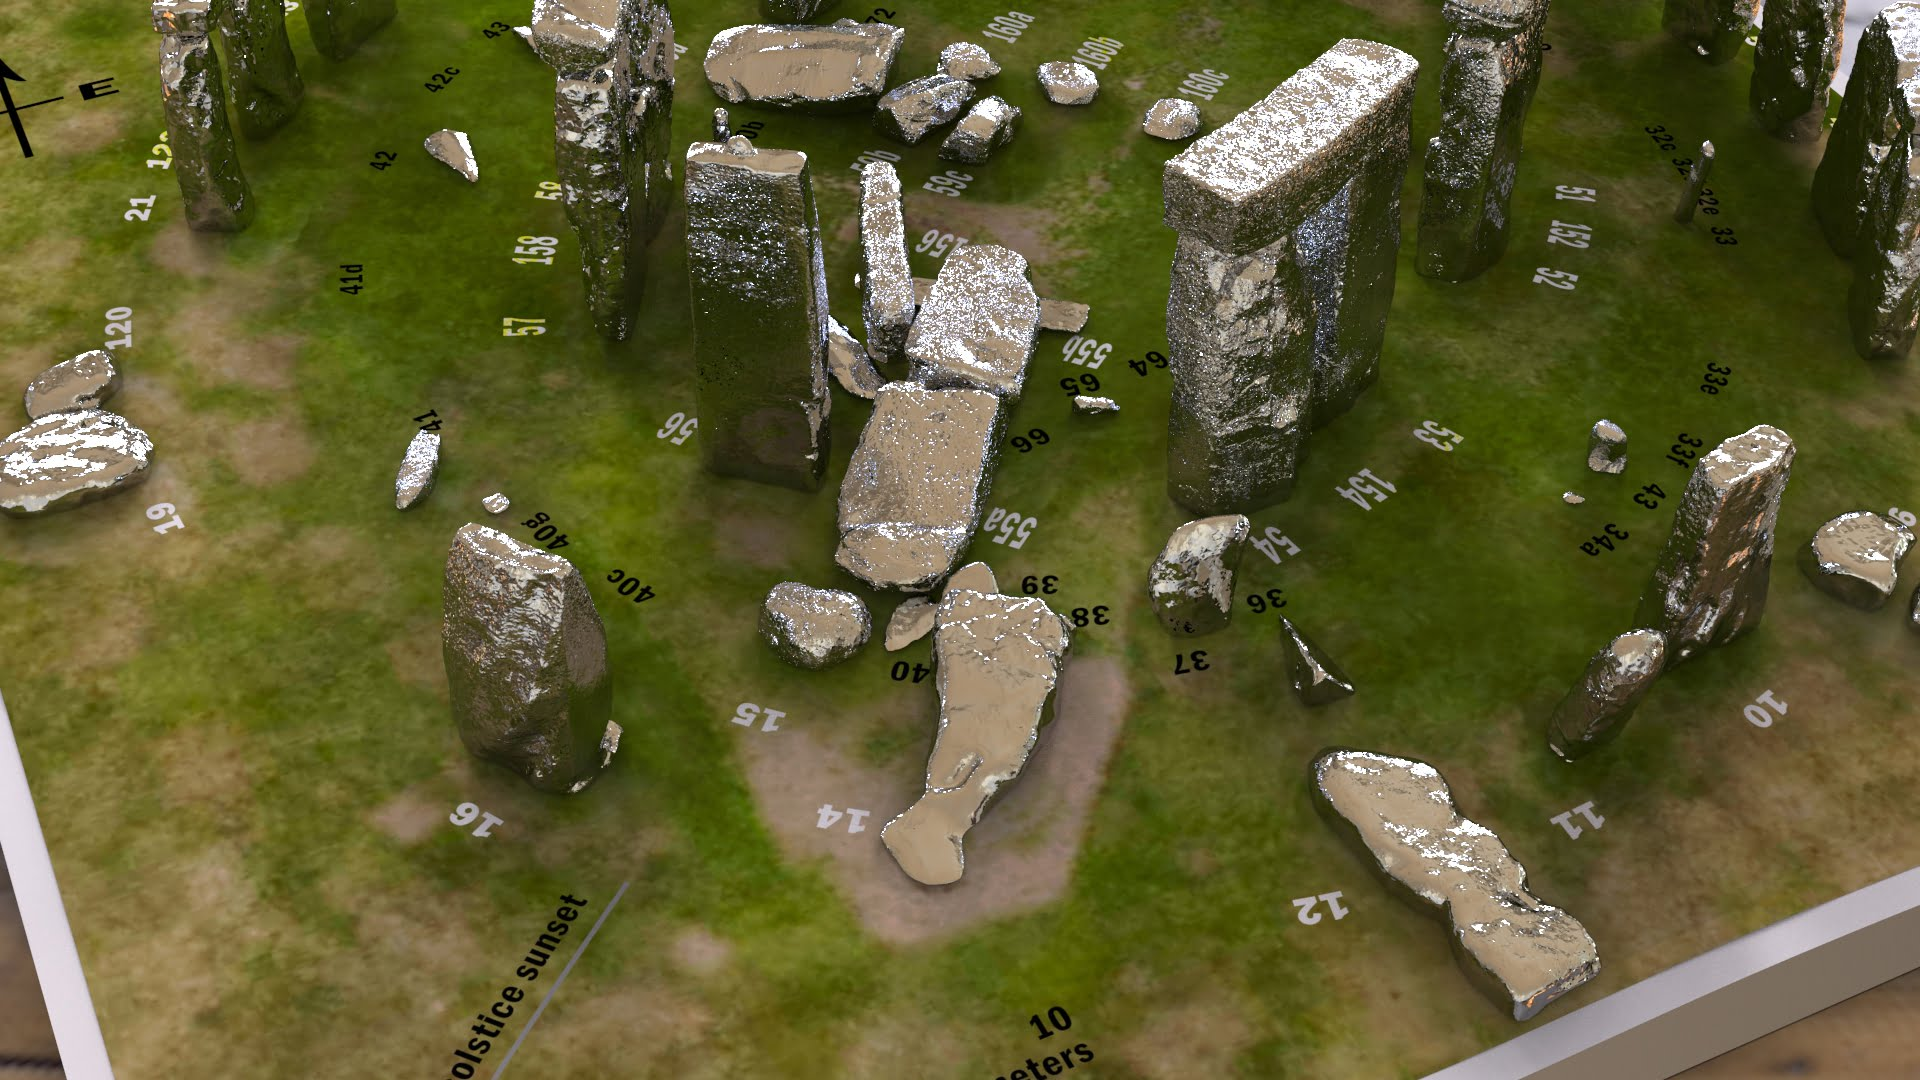 Buy Stonehenge Models: Silver Stonehenge replica models at 200th scale 2  - 200th scale pick n mix -